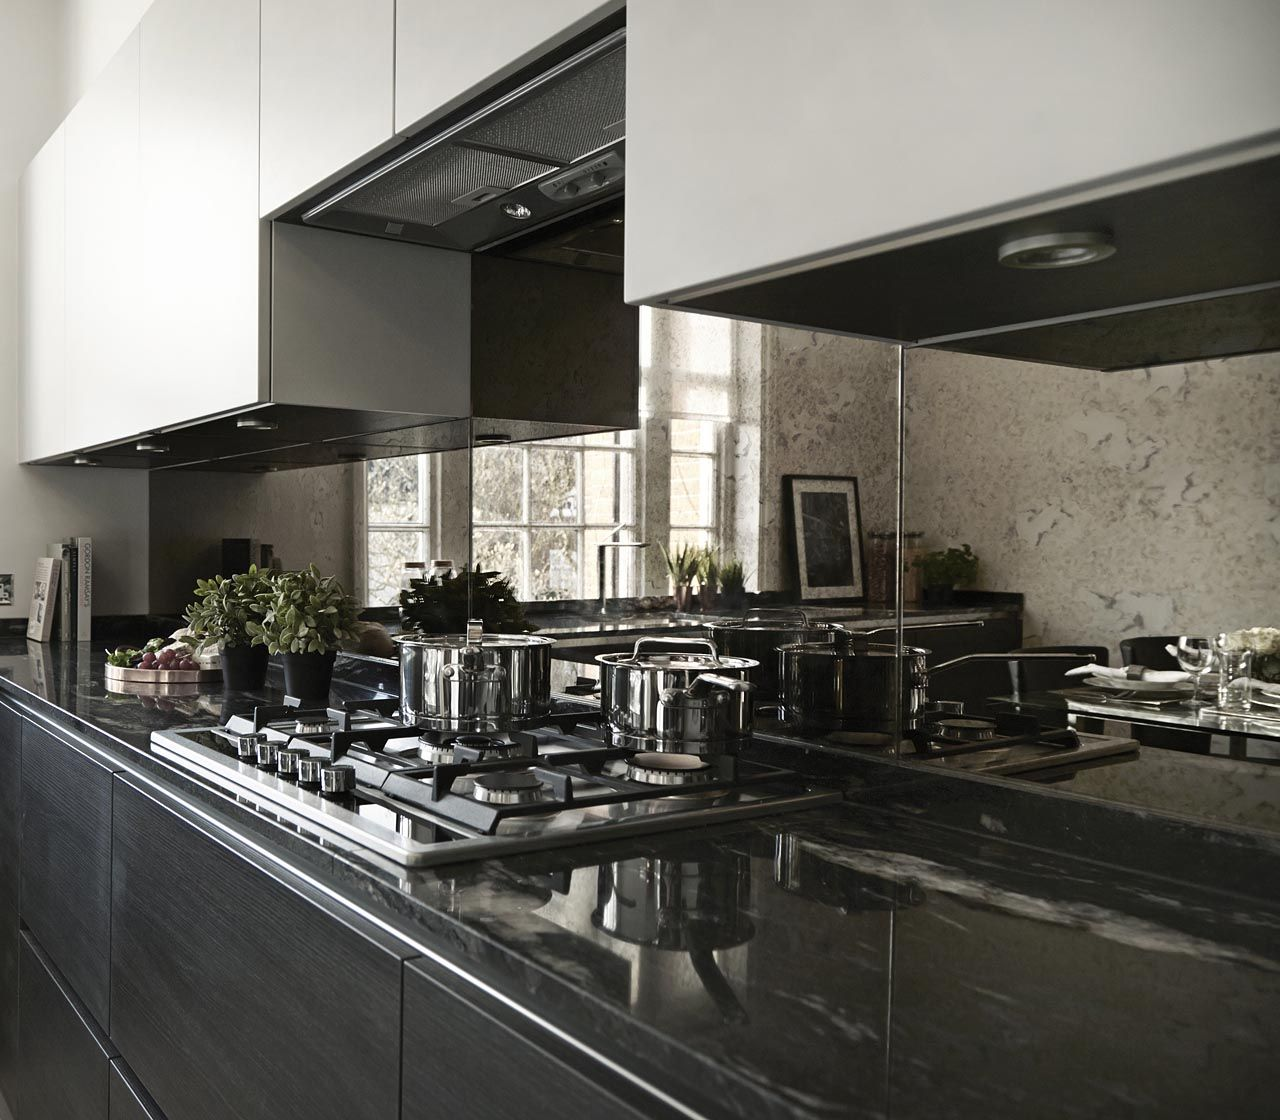 Blue Kitchen London: High End Luxury Interior Designers In London